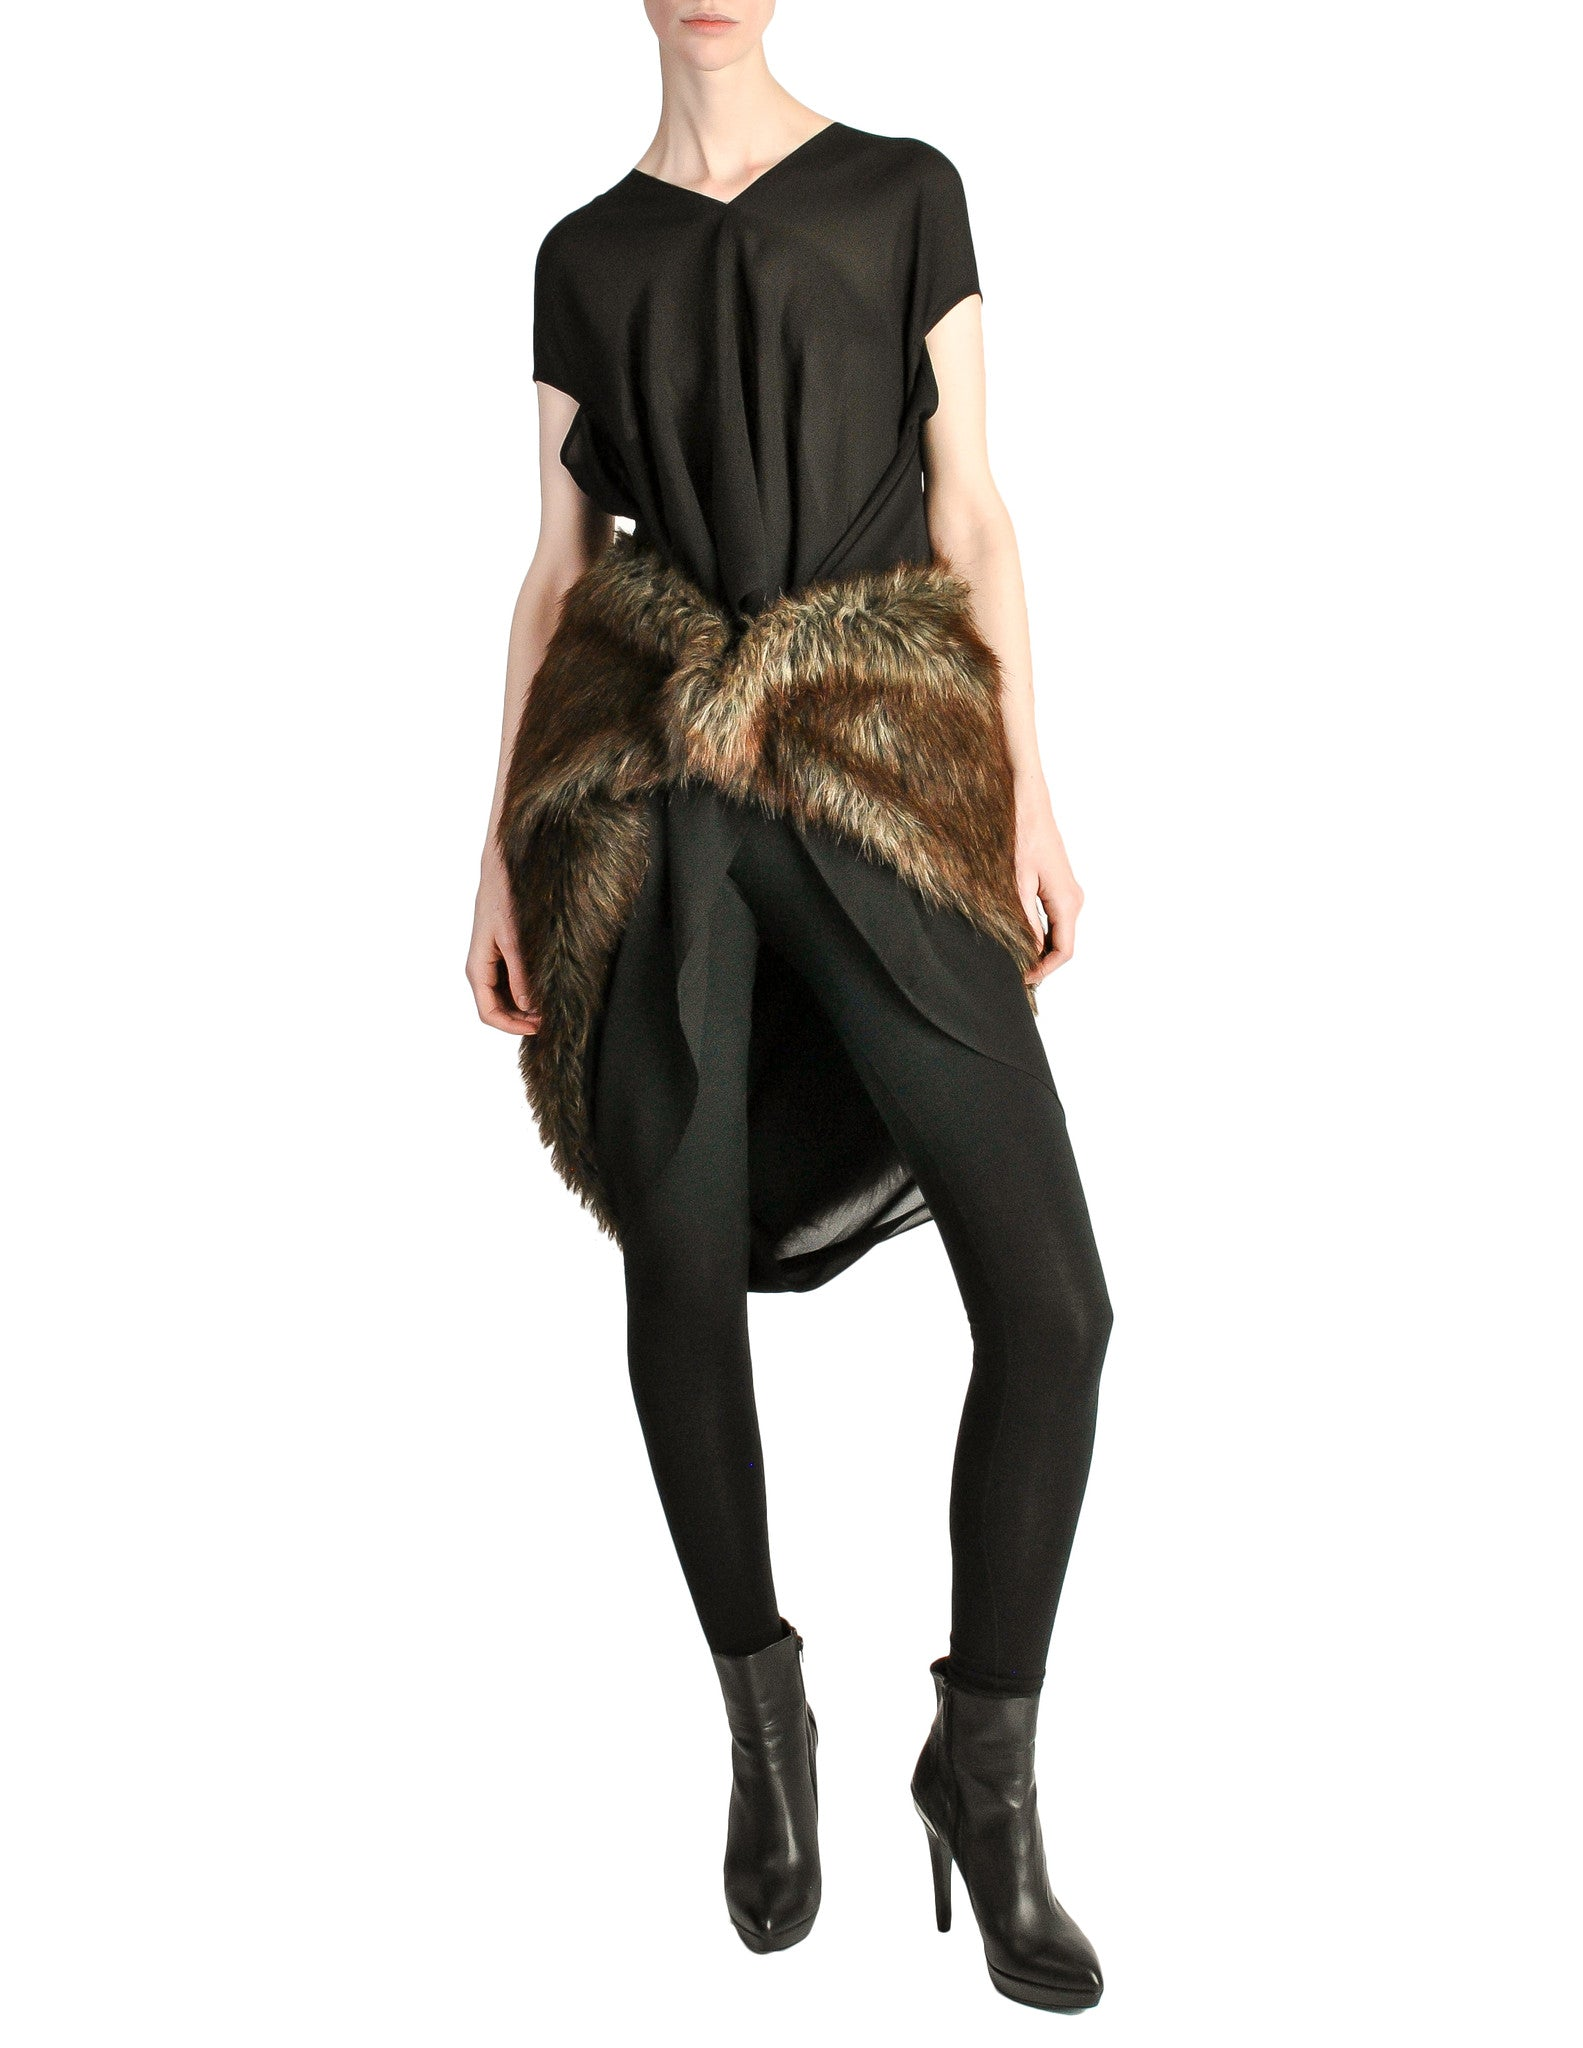 Junya Watanabe Comme des Garcons Black Sheer Brown Fur Dress - Amarcord Vintage Fashion  - 1